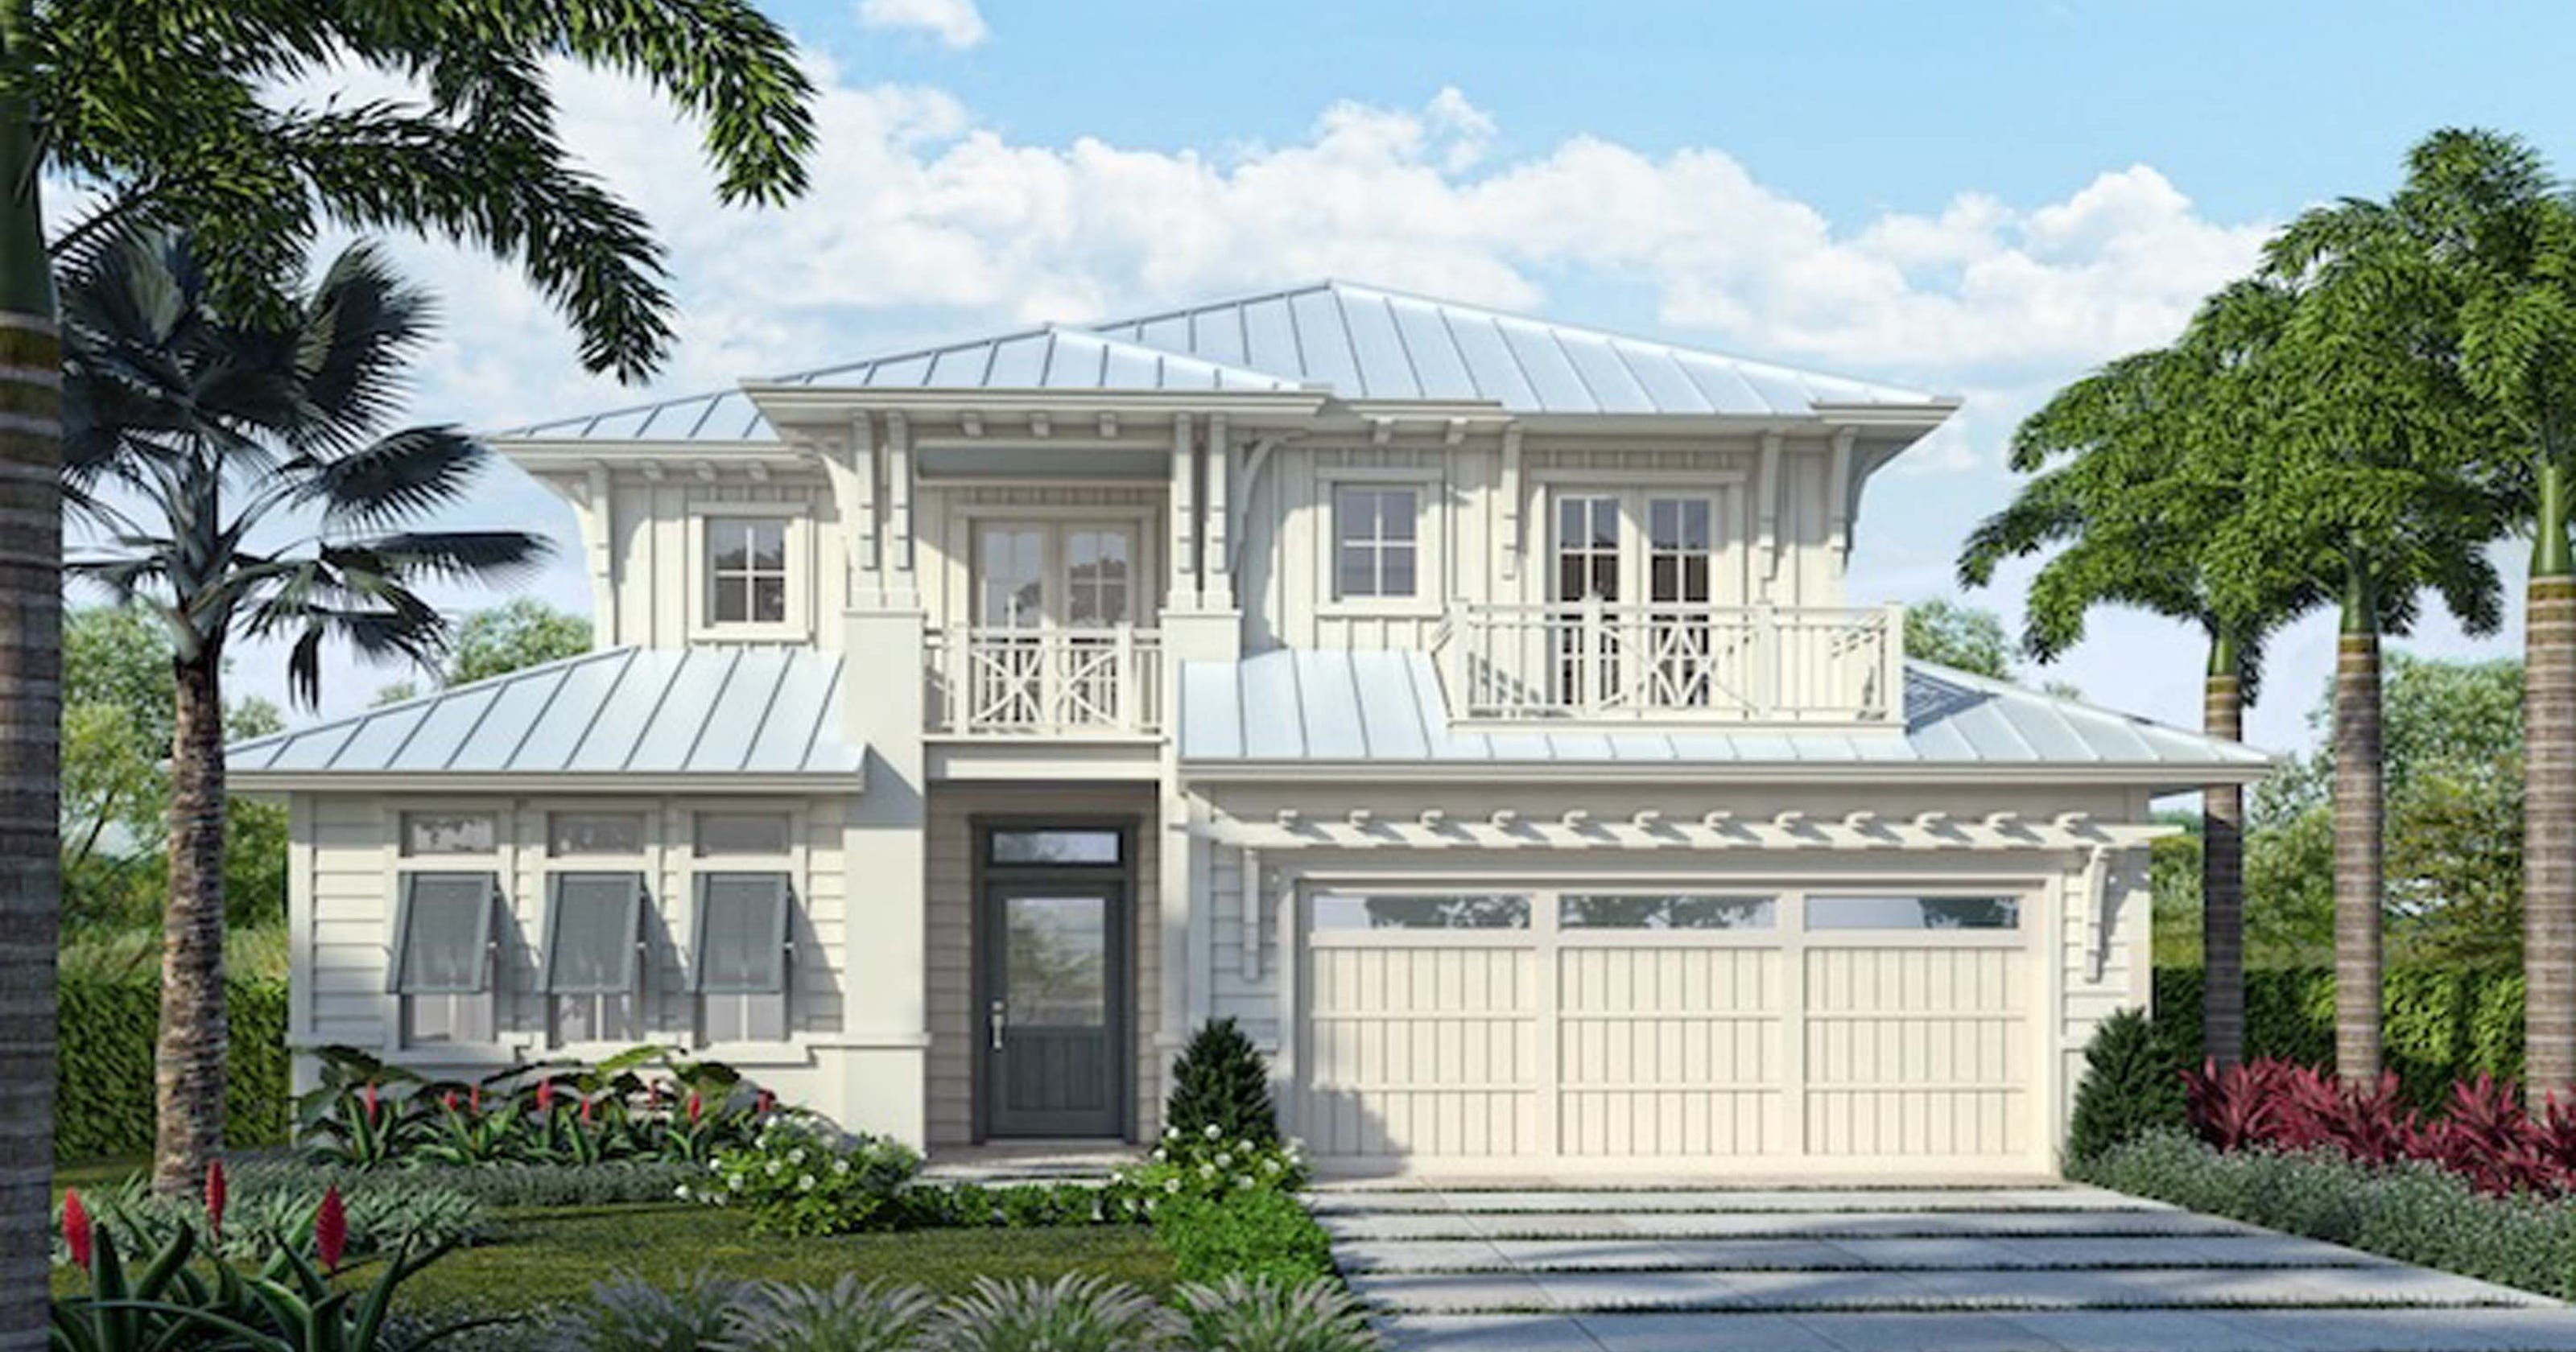 London Bay's new downtown model features interiors by Romanza Interior Design